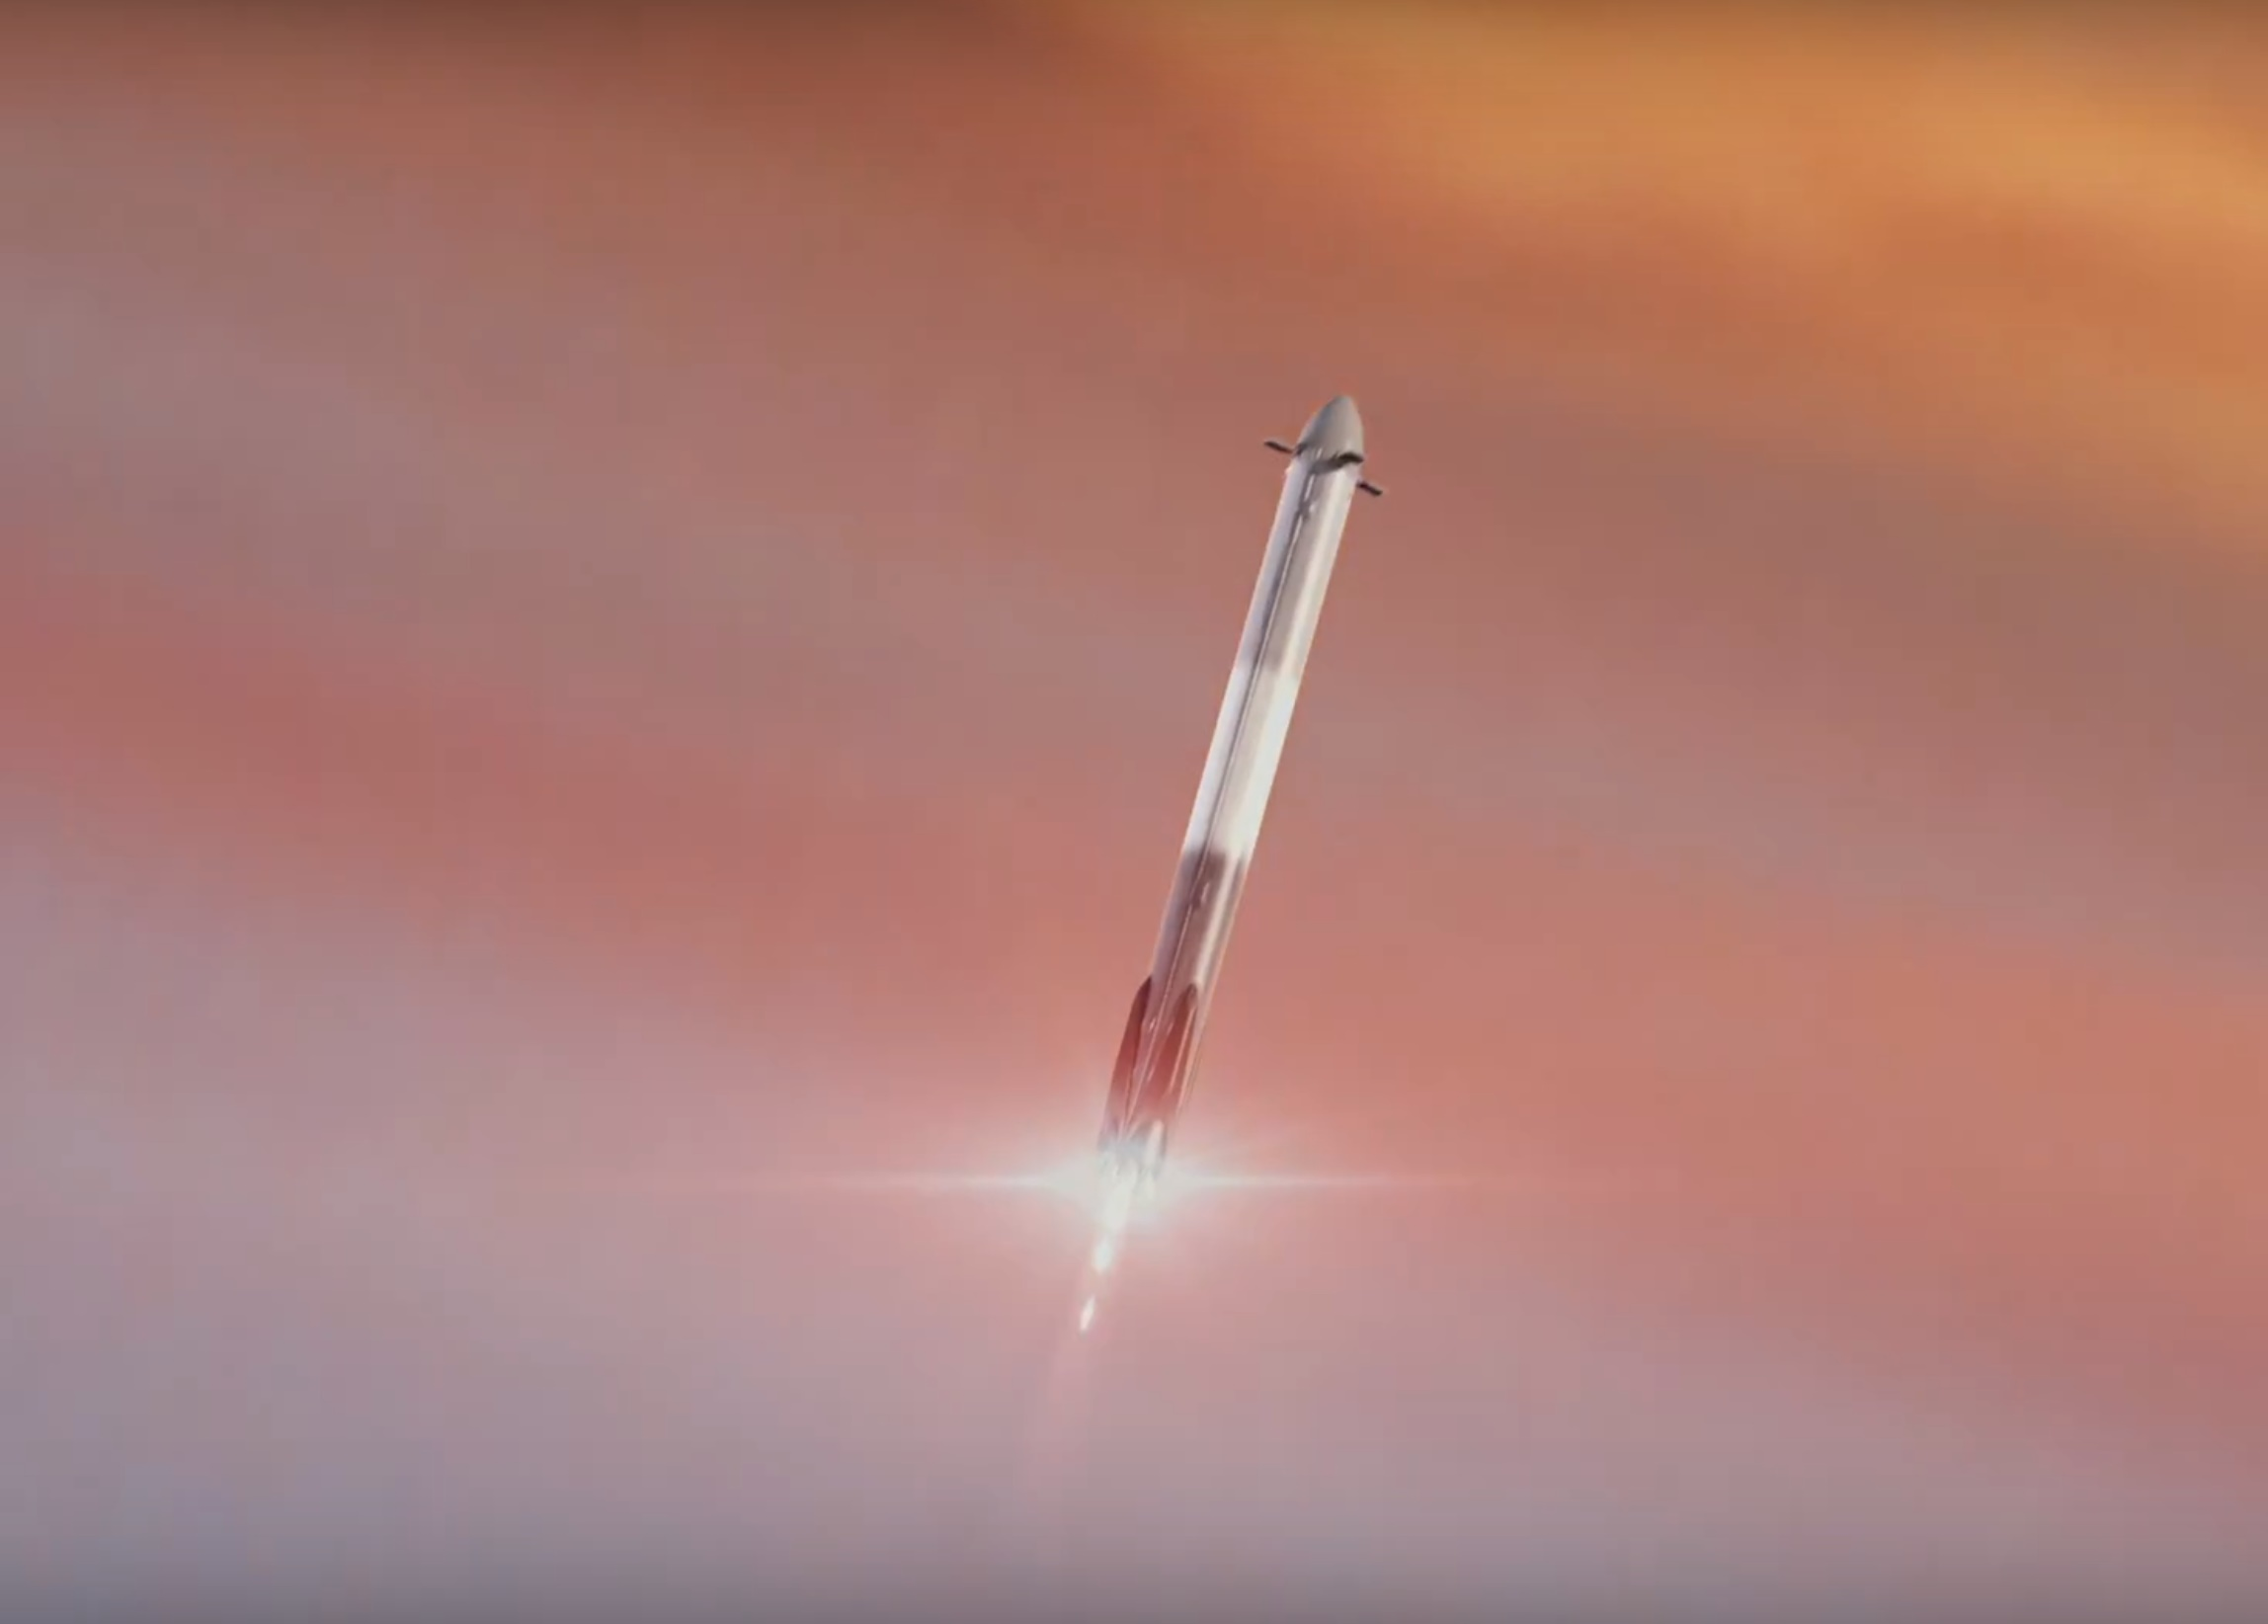 Falcon Heavy side booster recovery (SpaceX)